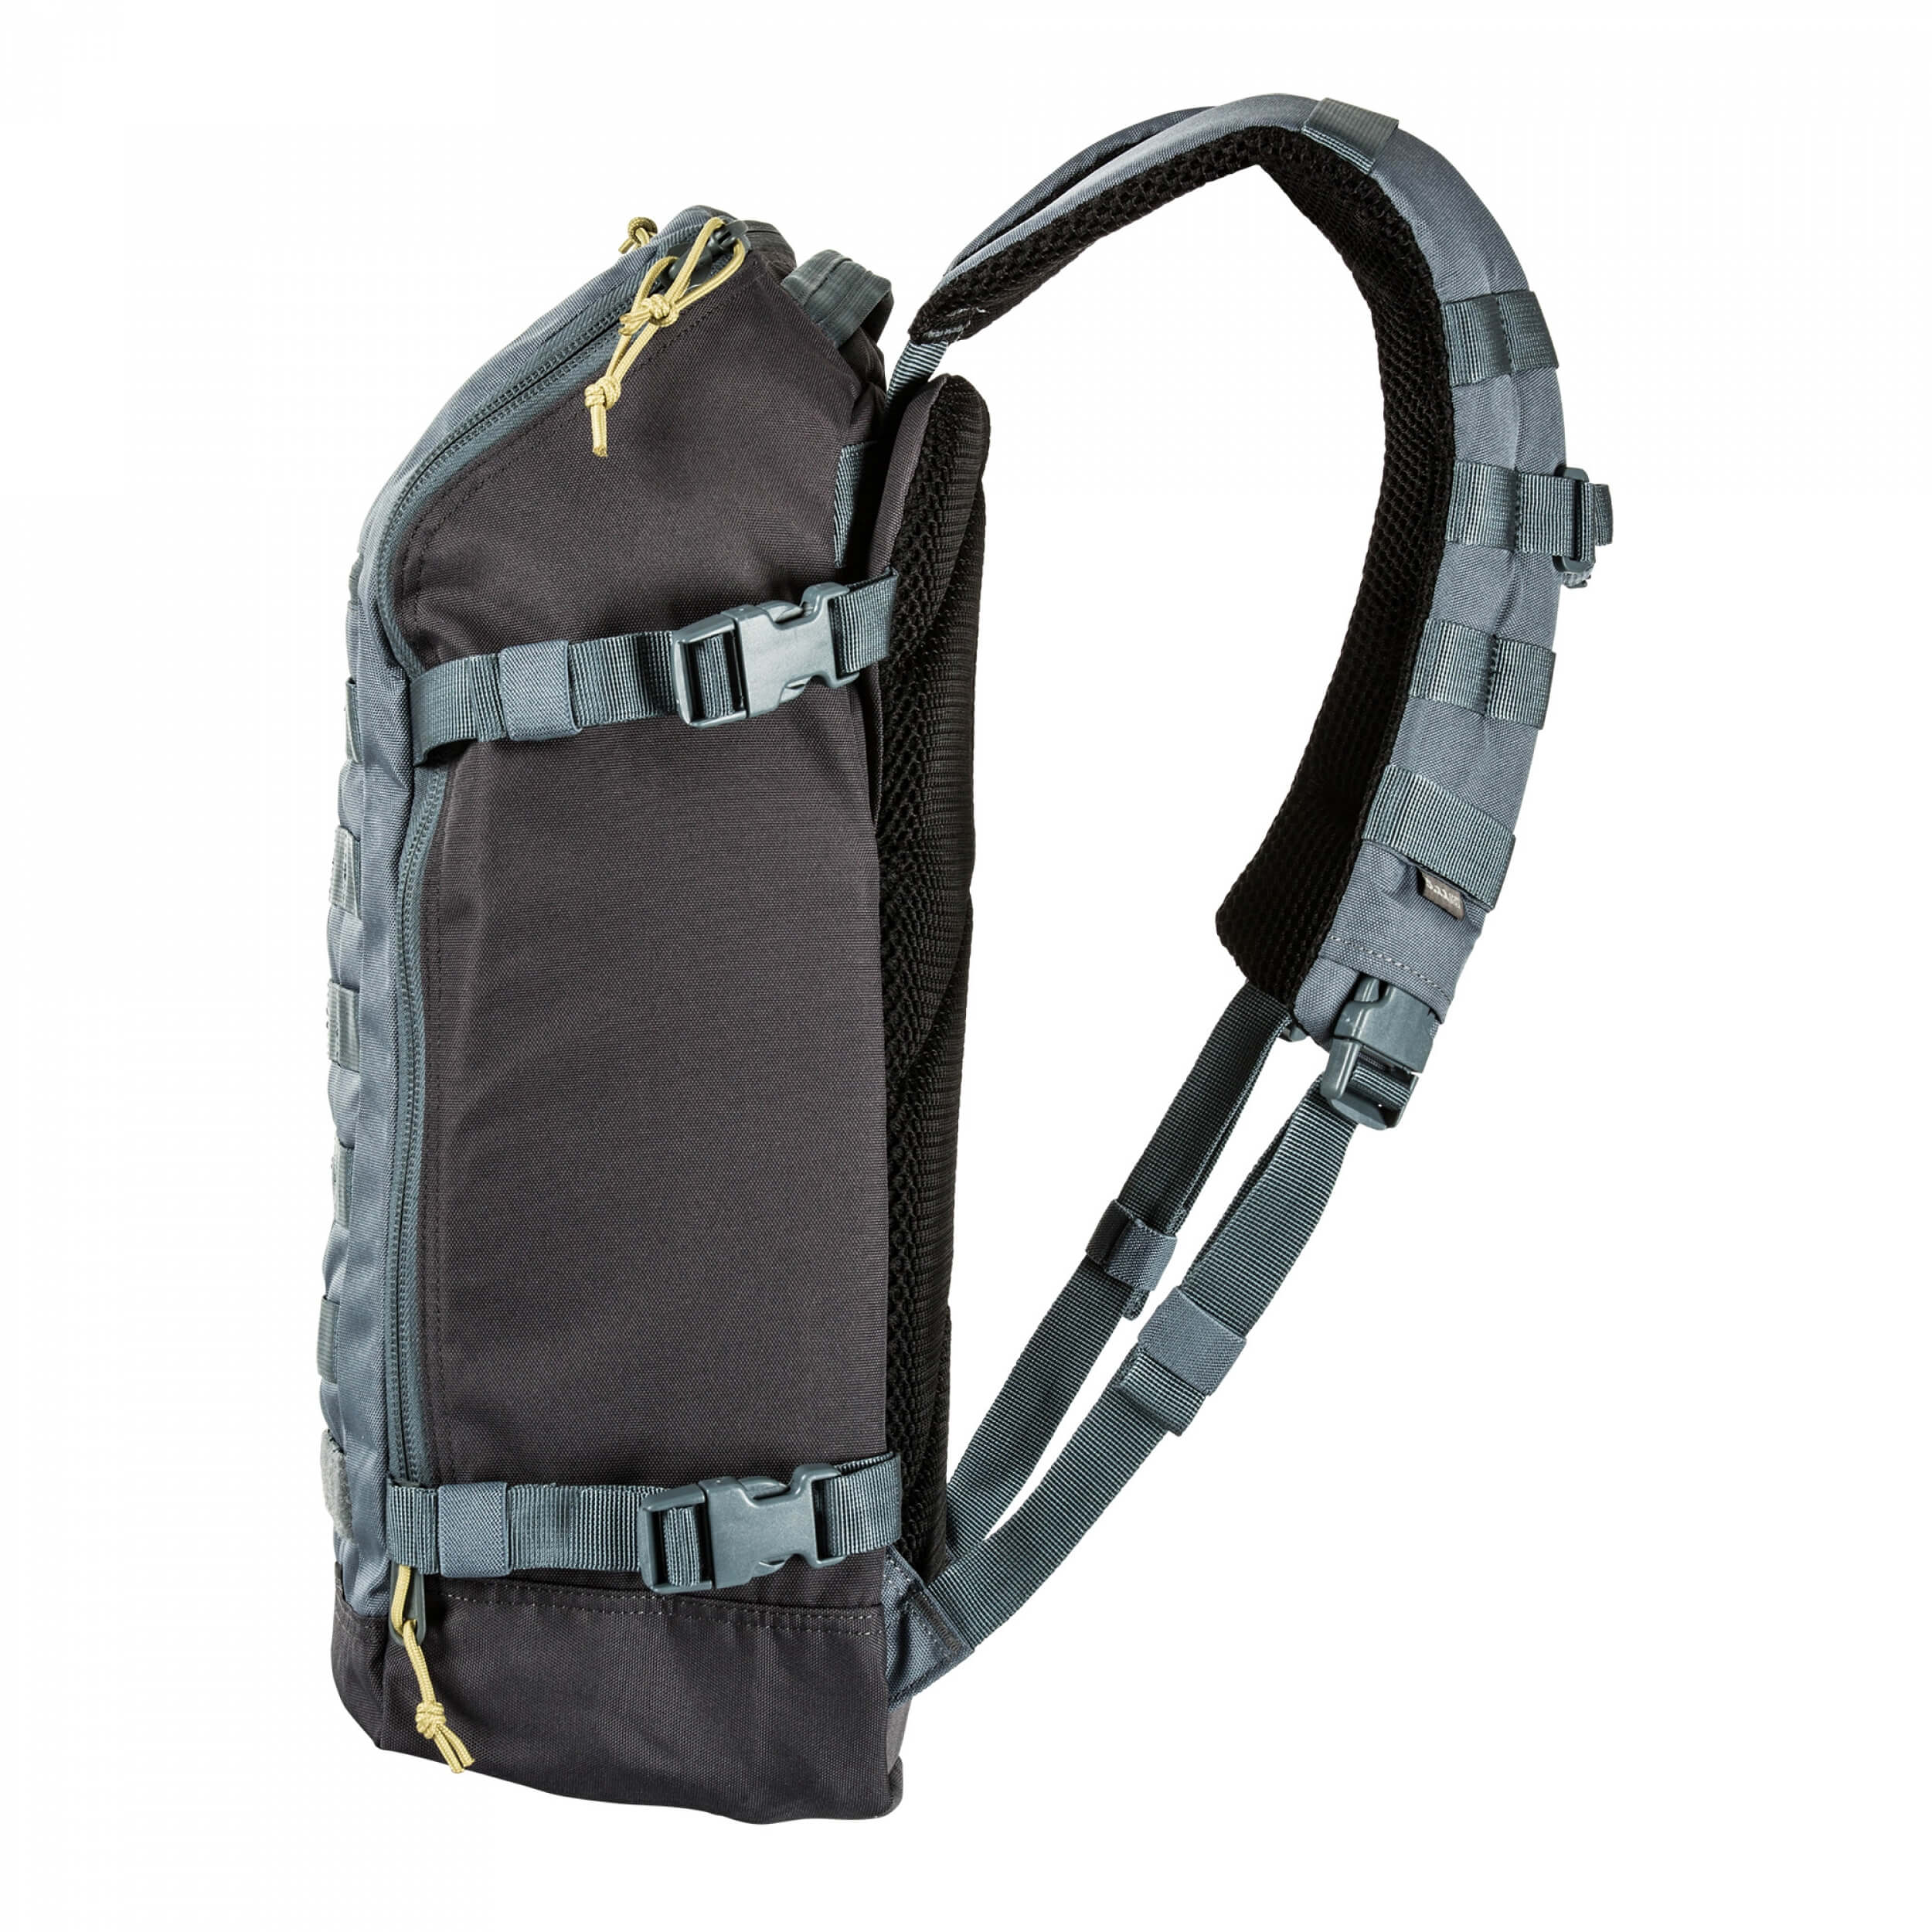 5.11 Tactical Rapid Quad Zip Pack - verschiede Farben